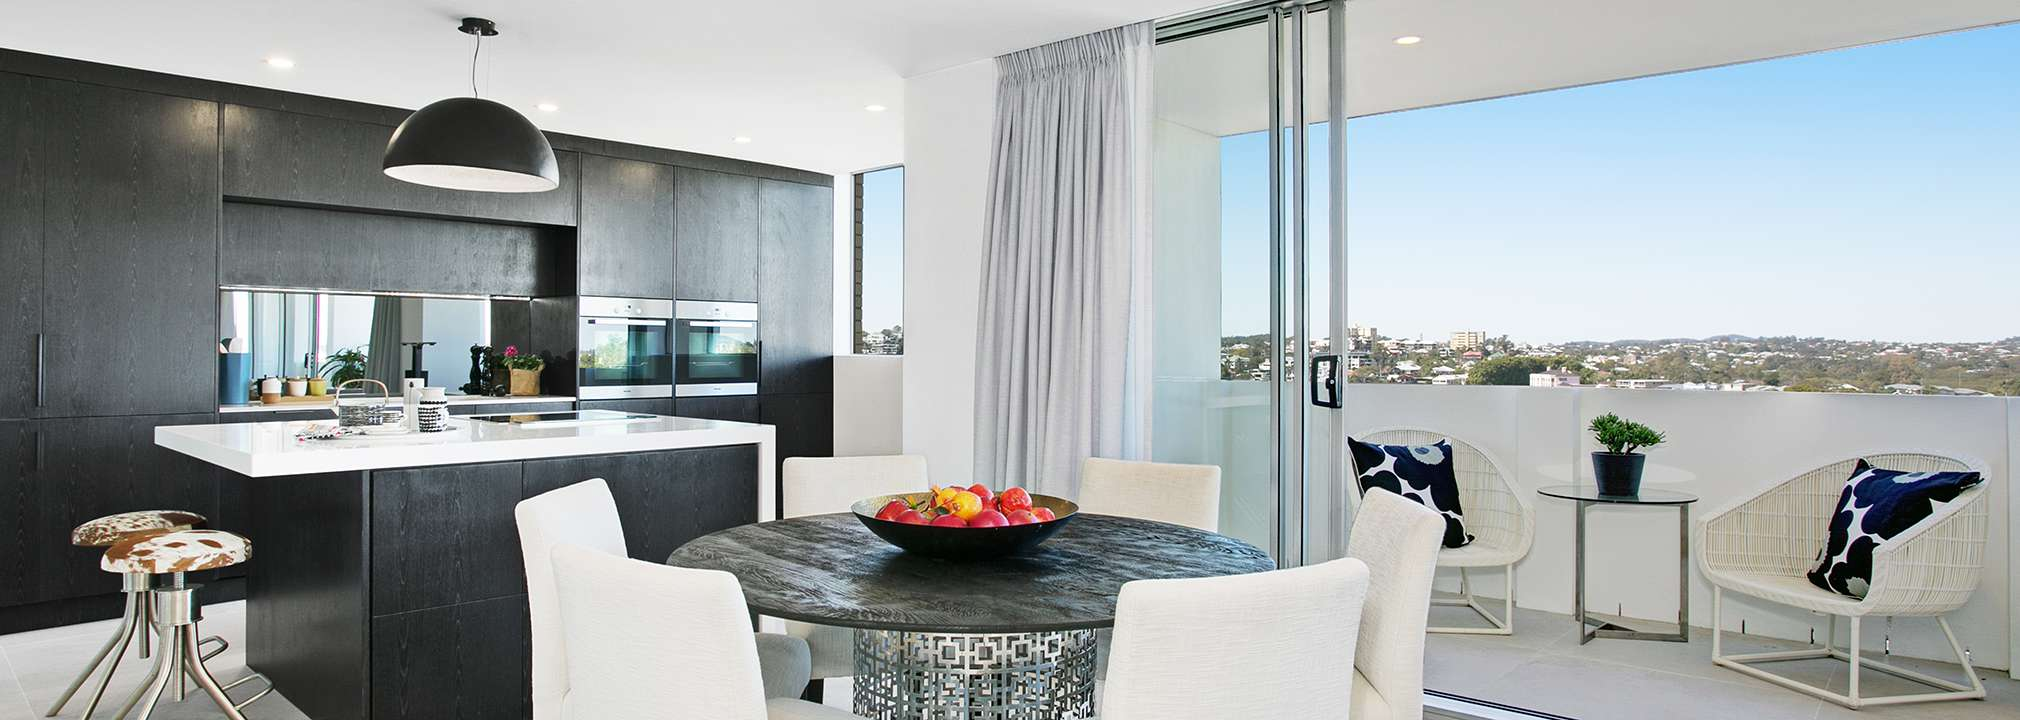 kitchen and dining in a unit